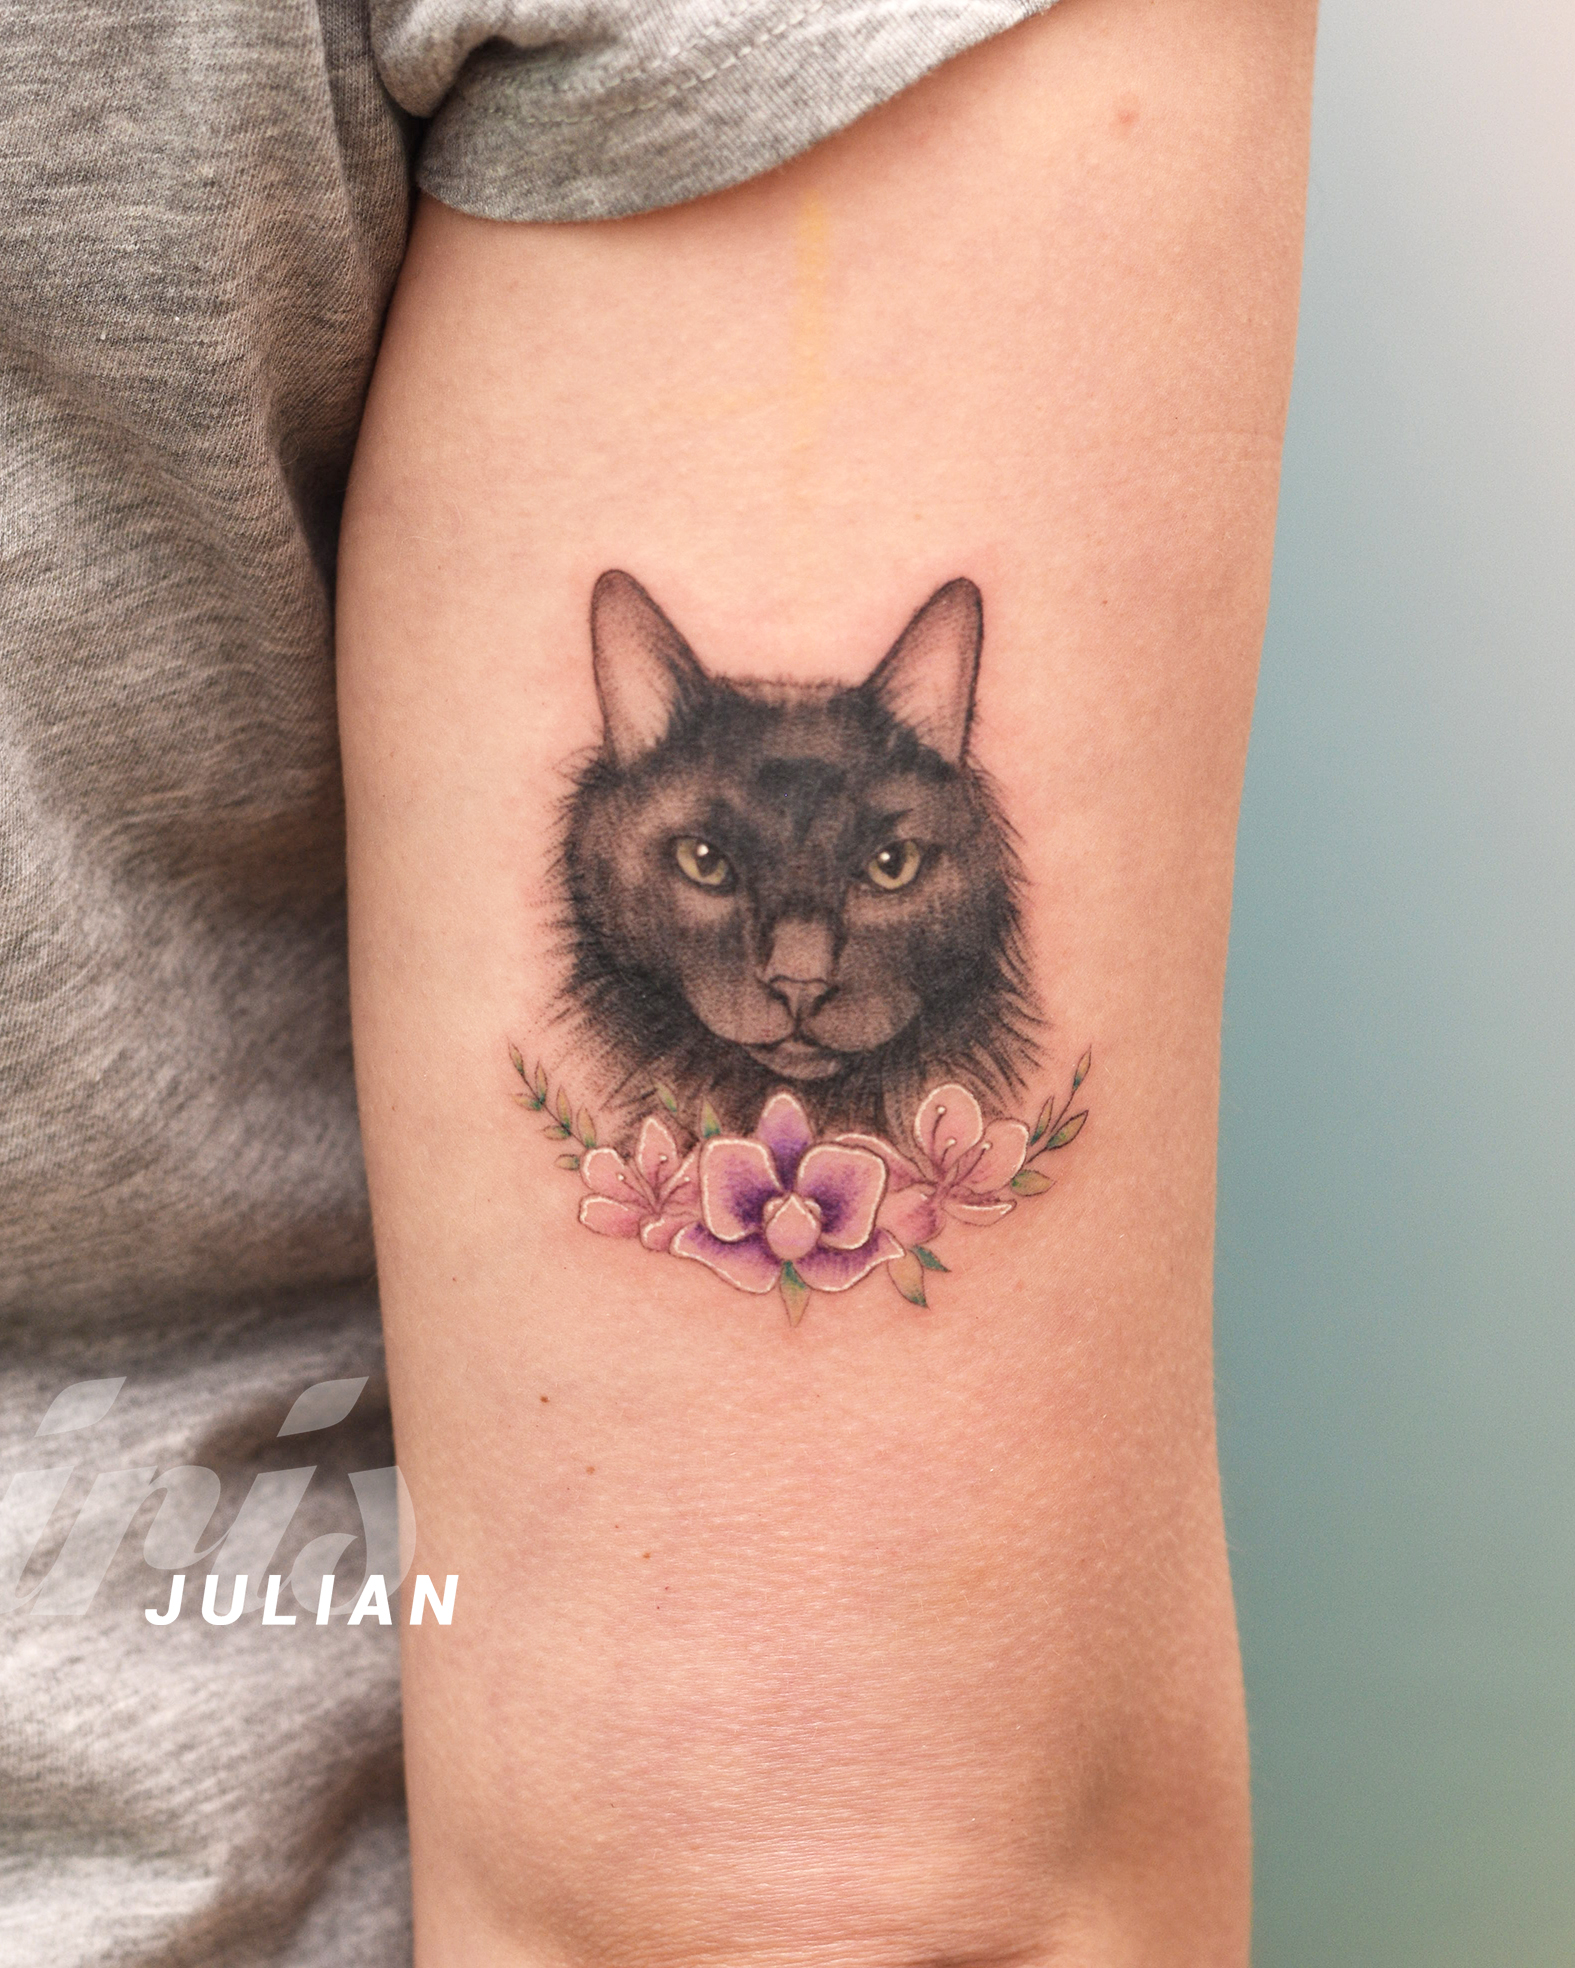 JULIAN par de gatos2